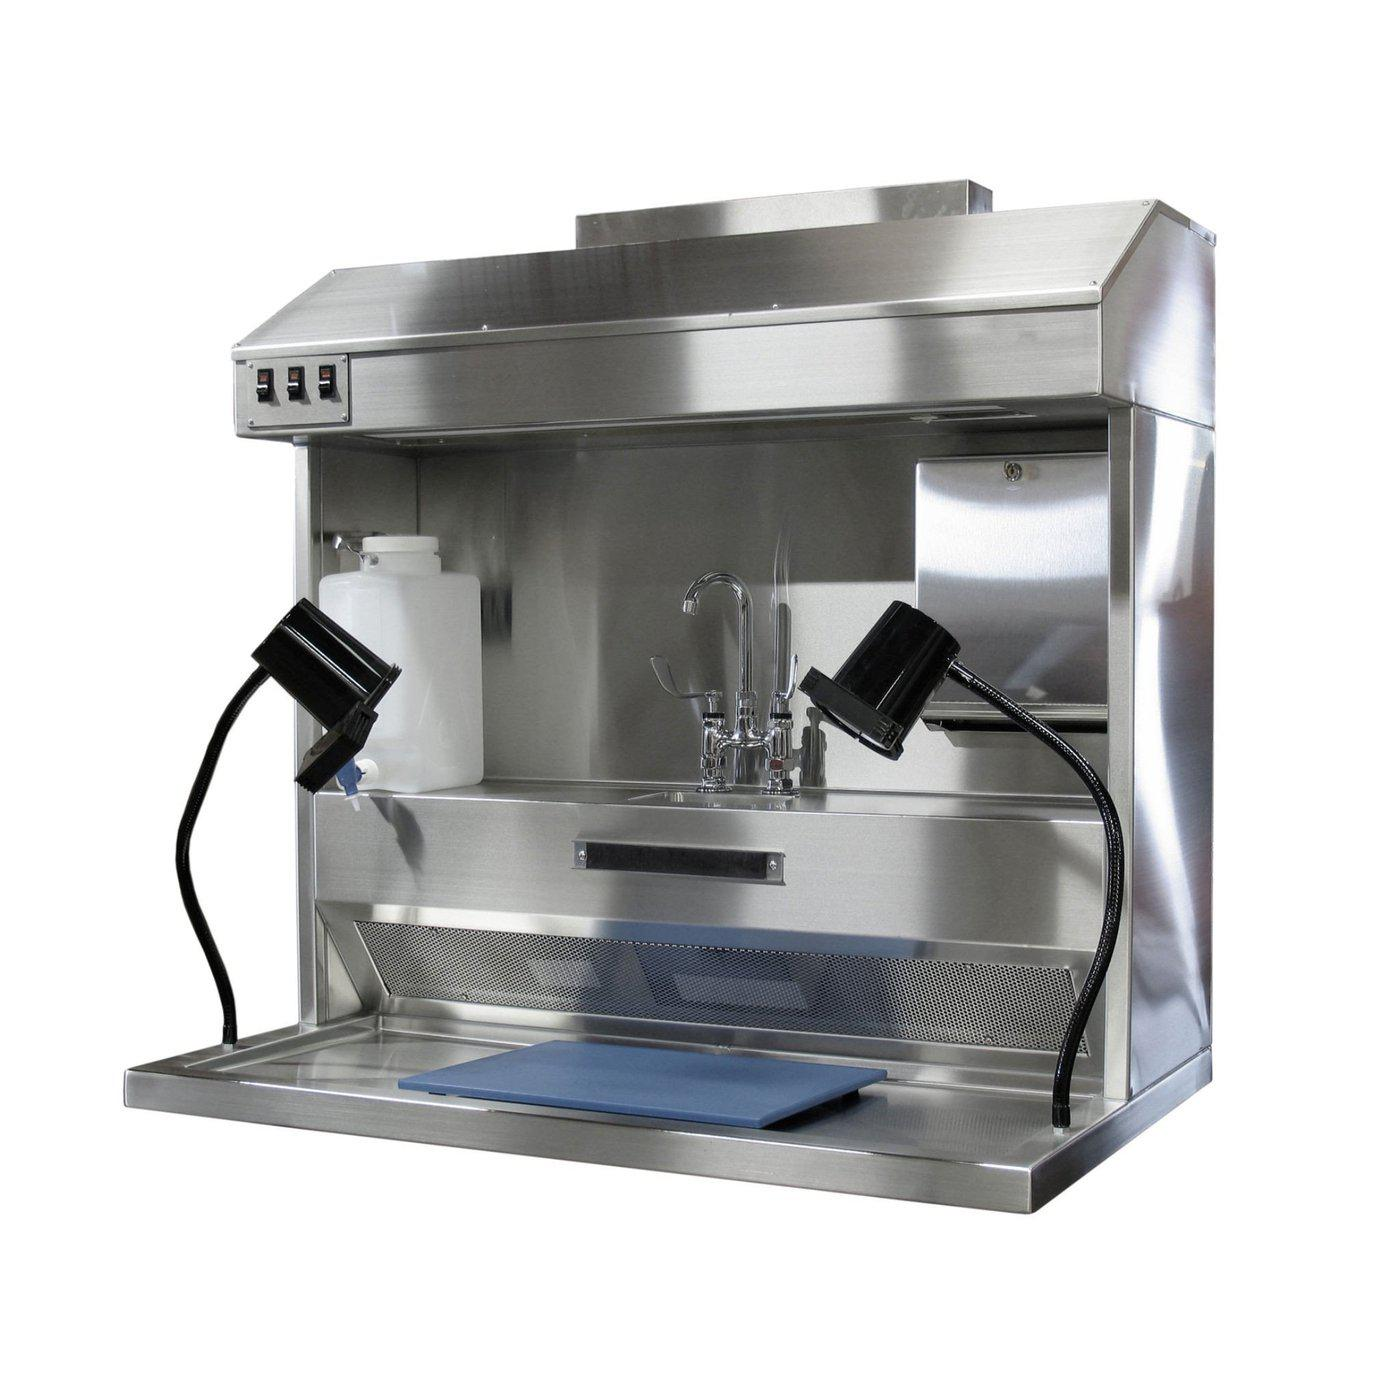 Countertop Pathology Workstation-Pathology Grossing Stations-Mortech Manufacturing Company Inc. Quality Stainless Steel Autopsy, Morgue, Funeral Home, Necropsy, Veterinary / Anatomy, Dissection Equipment and Accessories